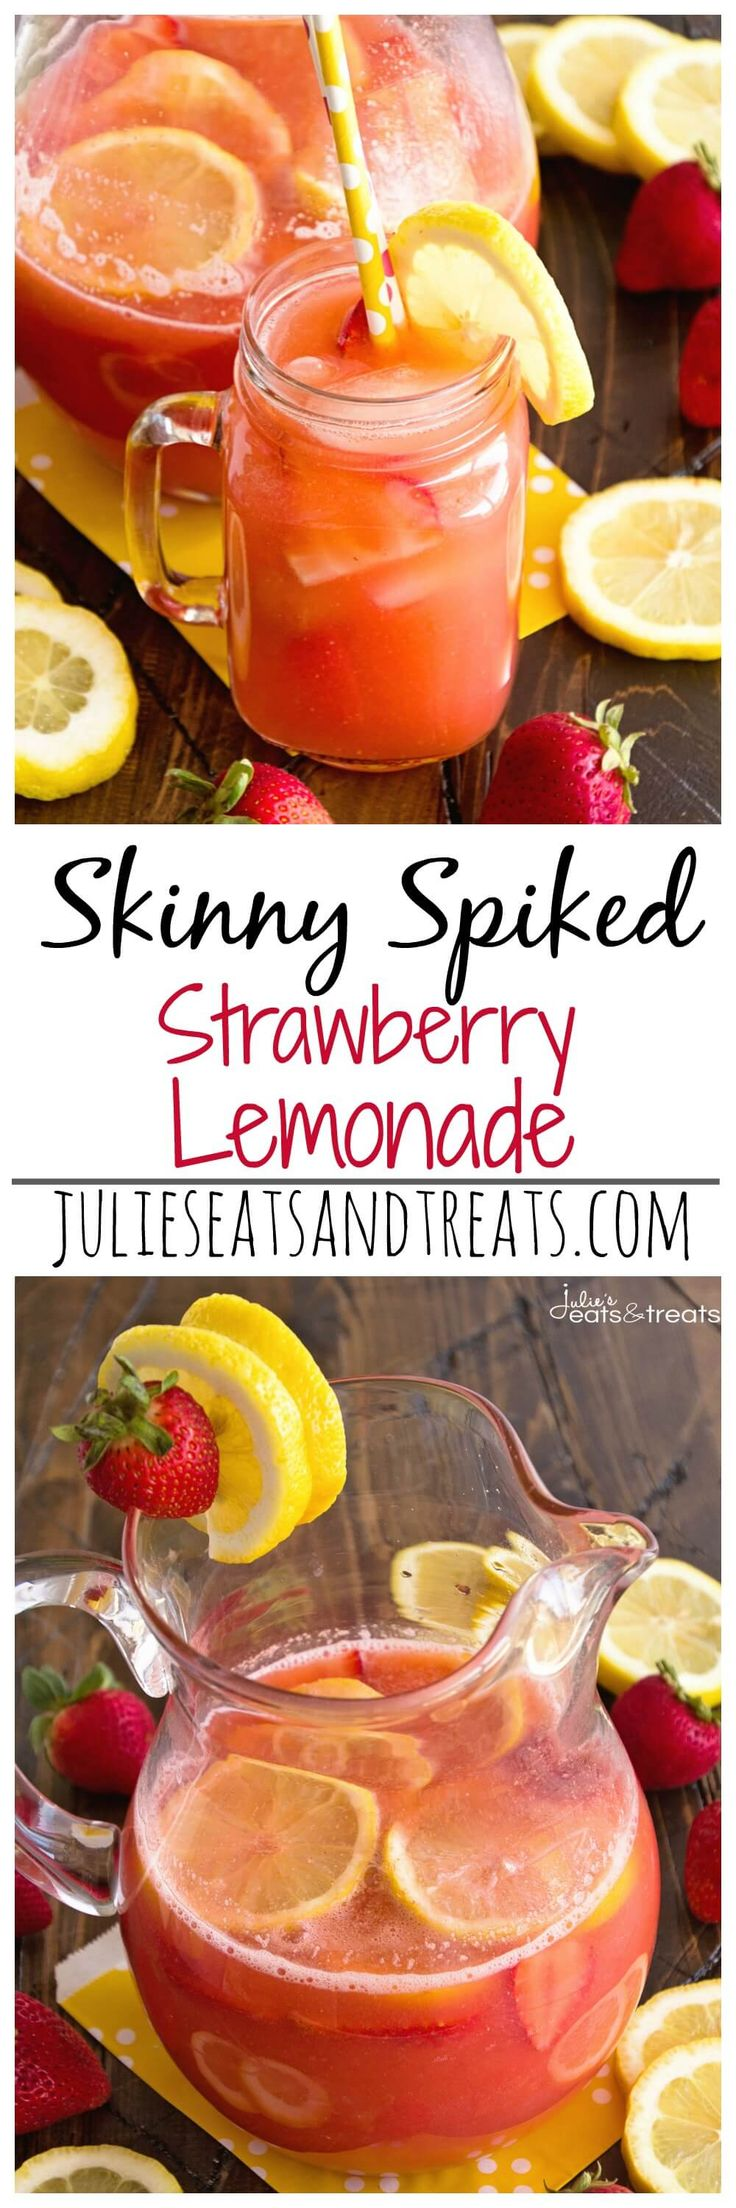 267 best images about alcoholic drinks on Pinterest Smirnoff